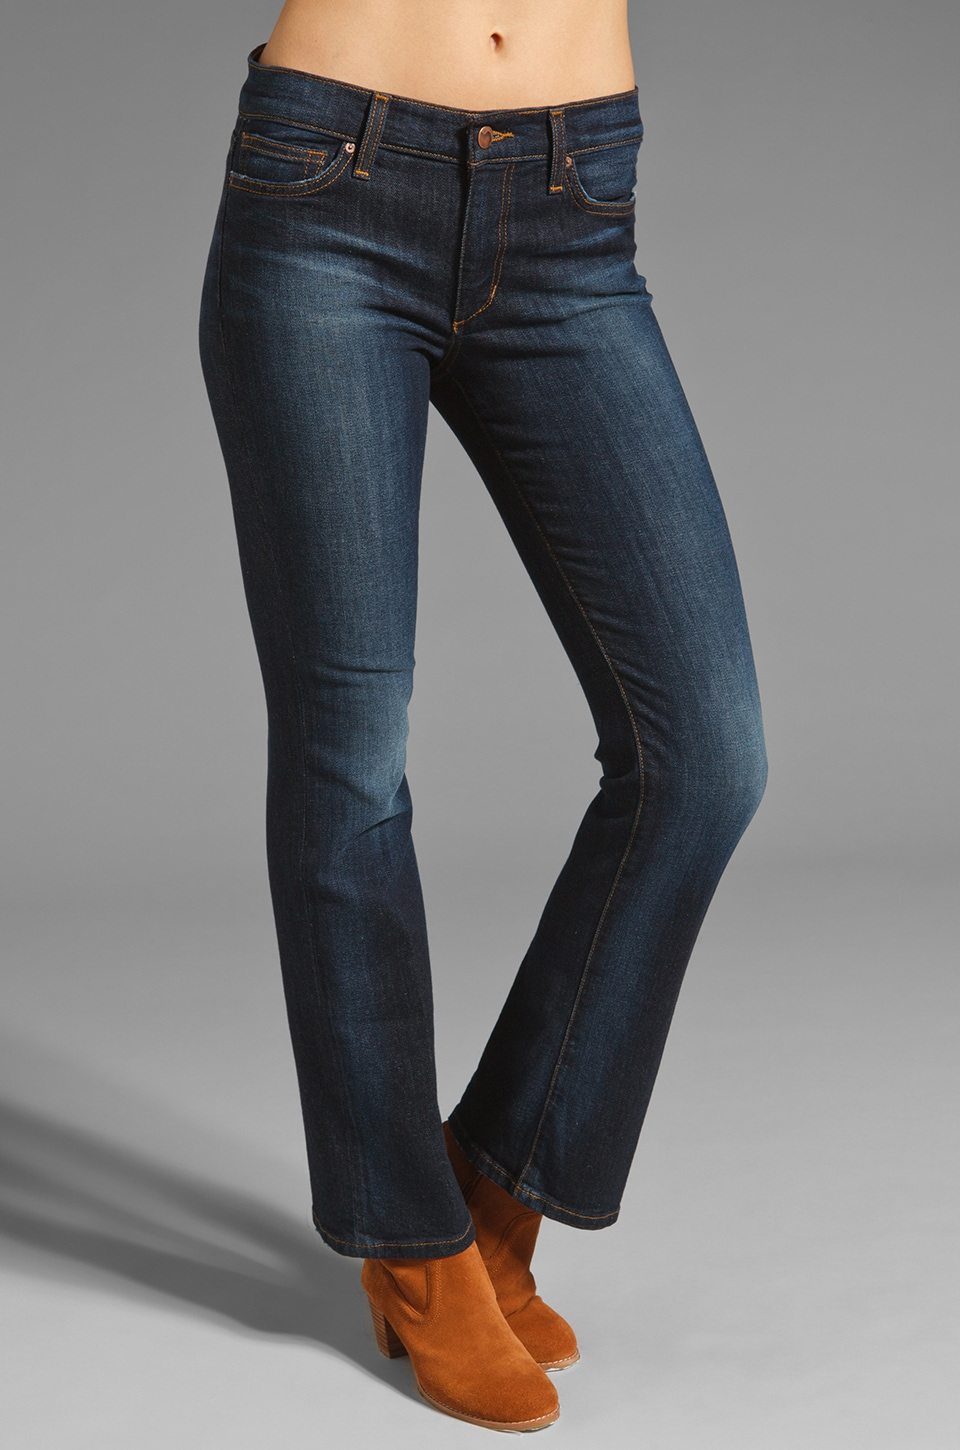 Joe's Jeans Petite Bootcut in Bridget